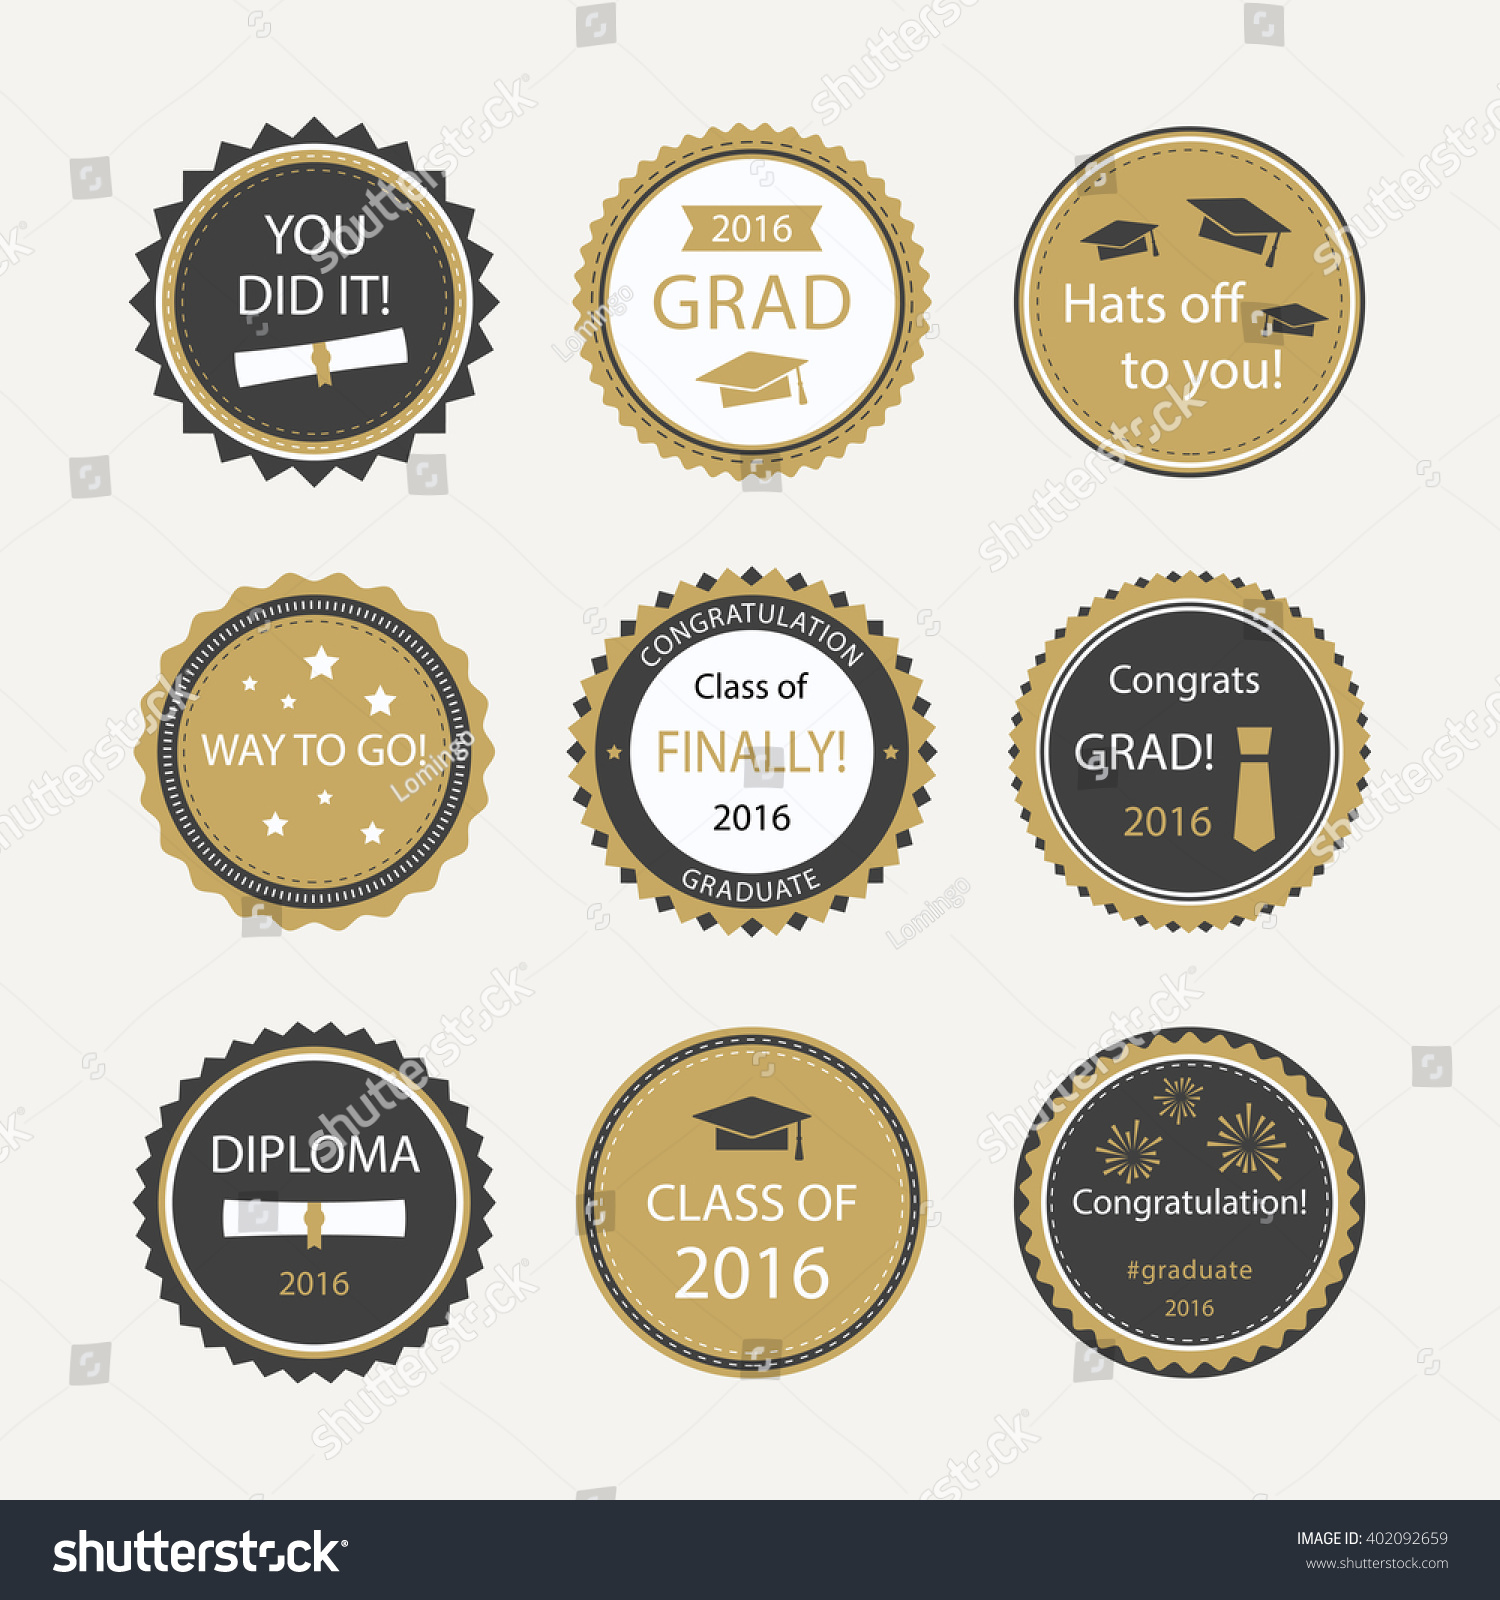 Set Of Graduation Cupcake Toppers. Vector Badges For ...